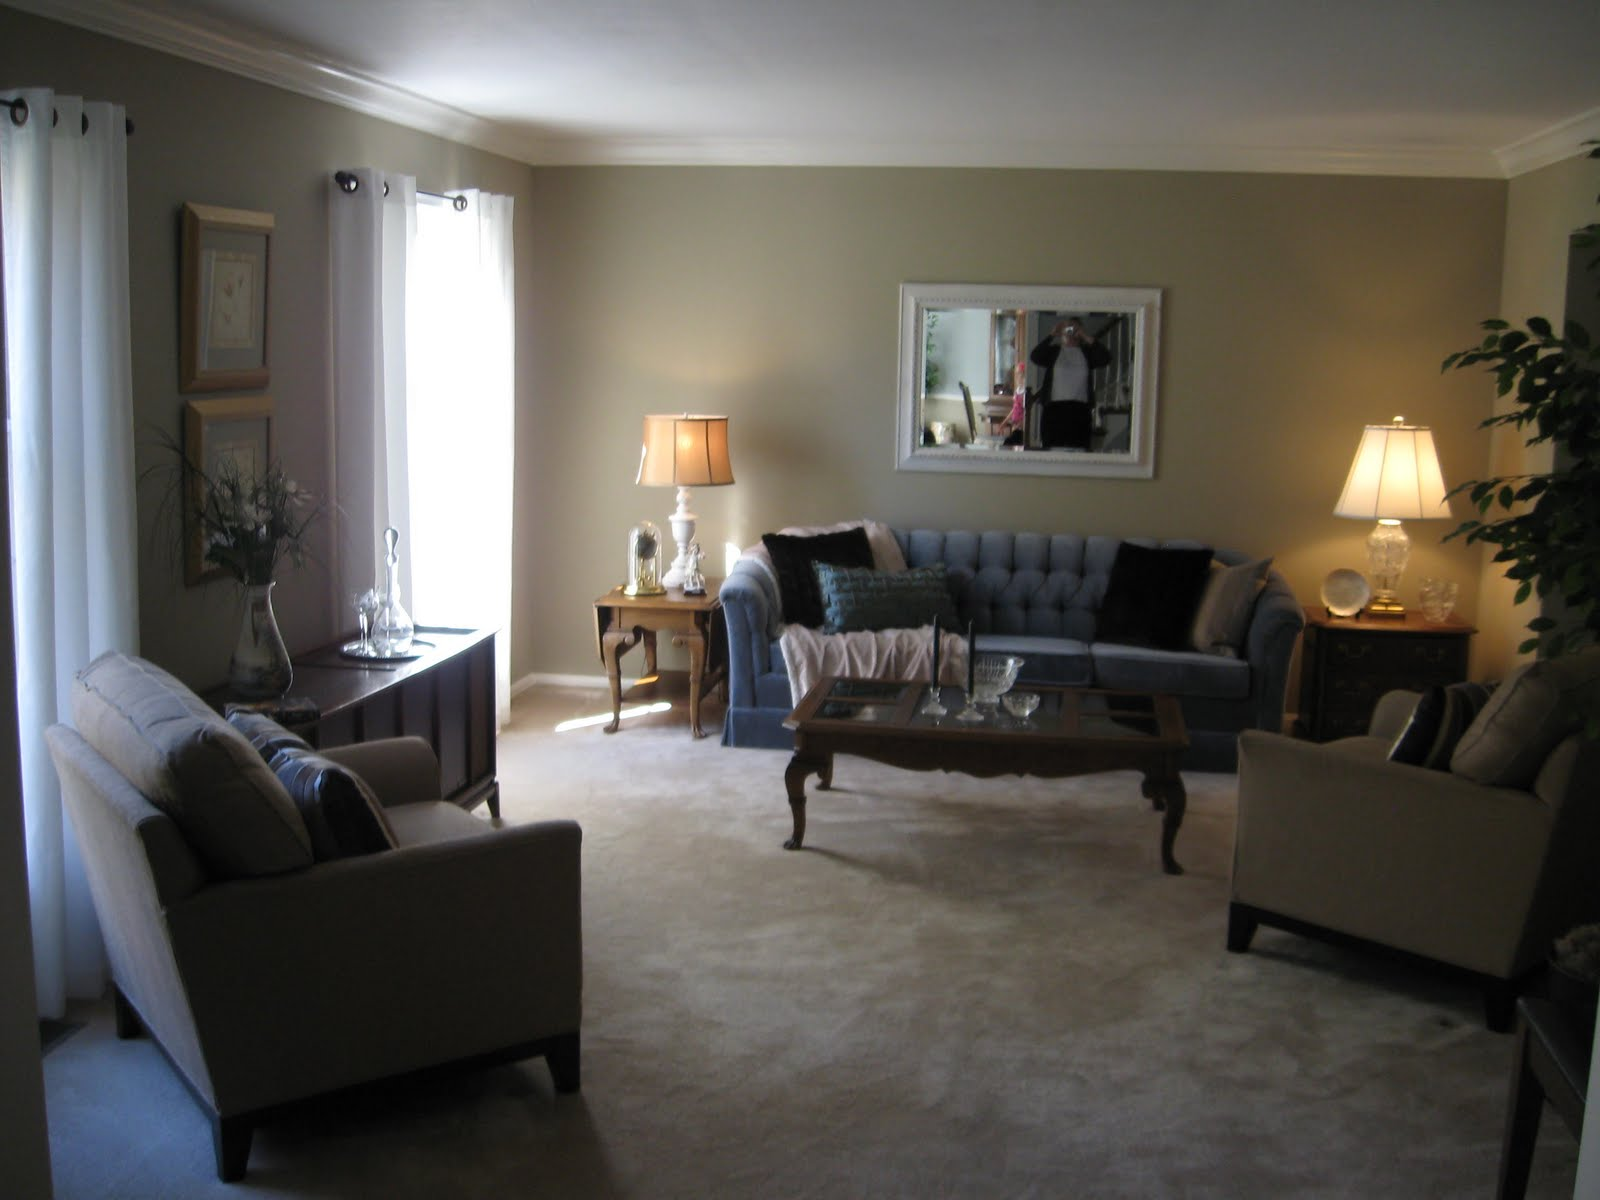 BLESSED PATH: My mom & dad's living room redo